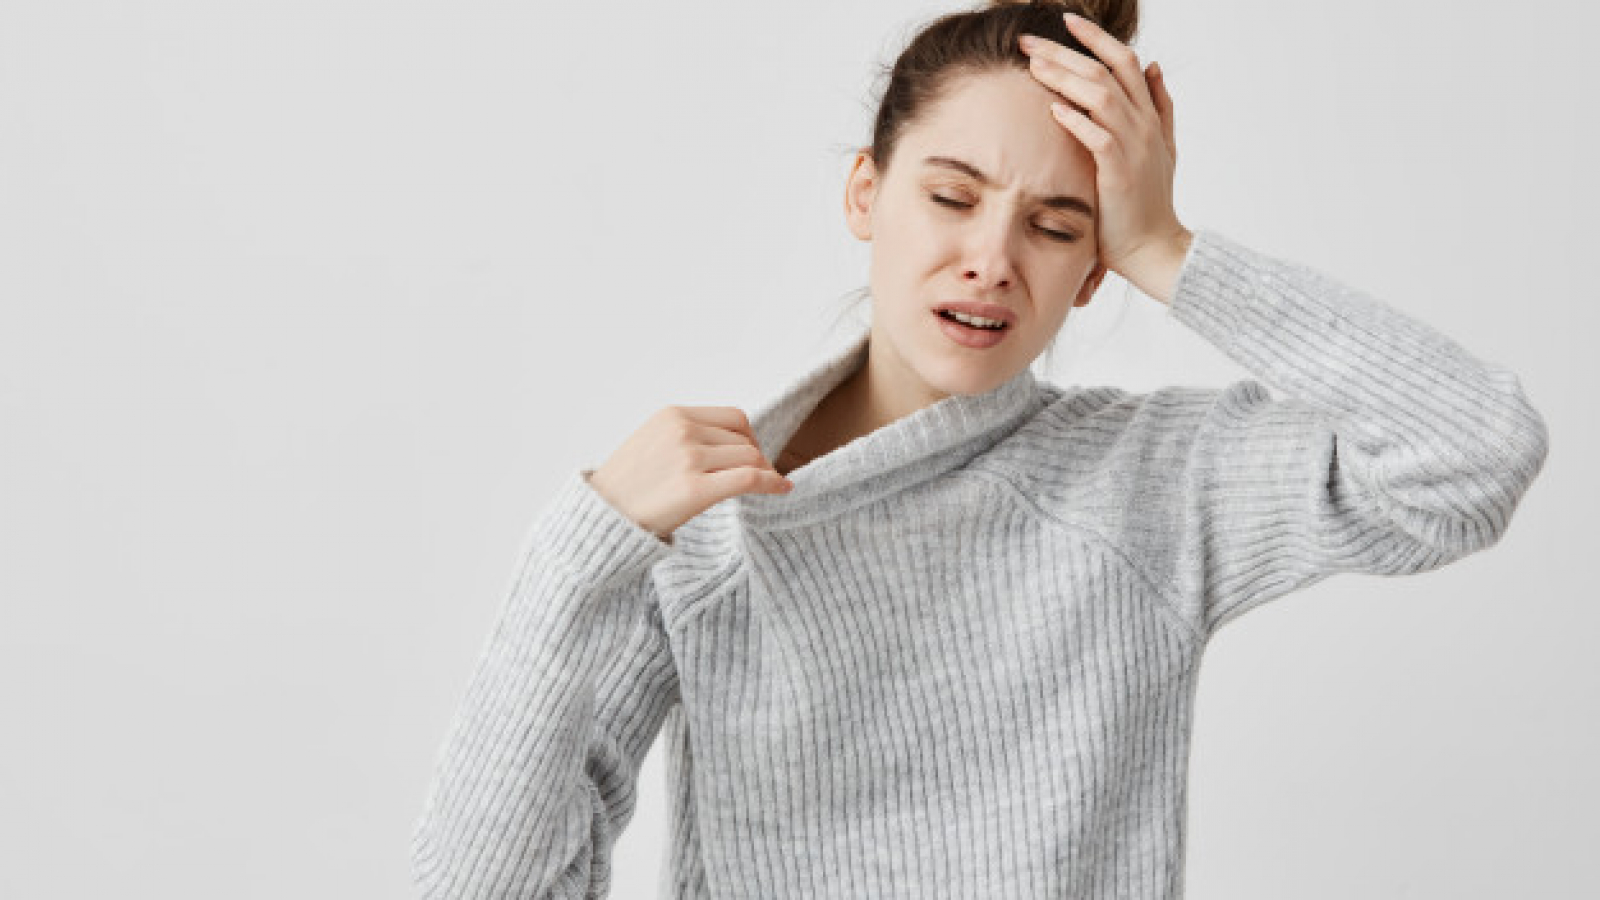 exhausted-girl-holding-her-head-with-closed-eyes-being-hot-female-office-assistant-suffering-from-temperature-fever-she-needs-fresh-air-health-concept_176420-10965